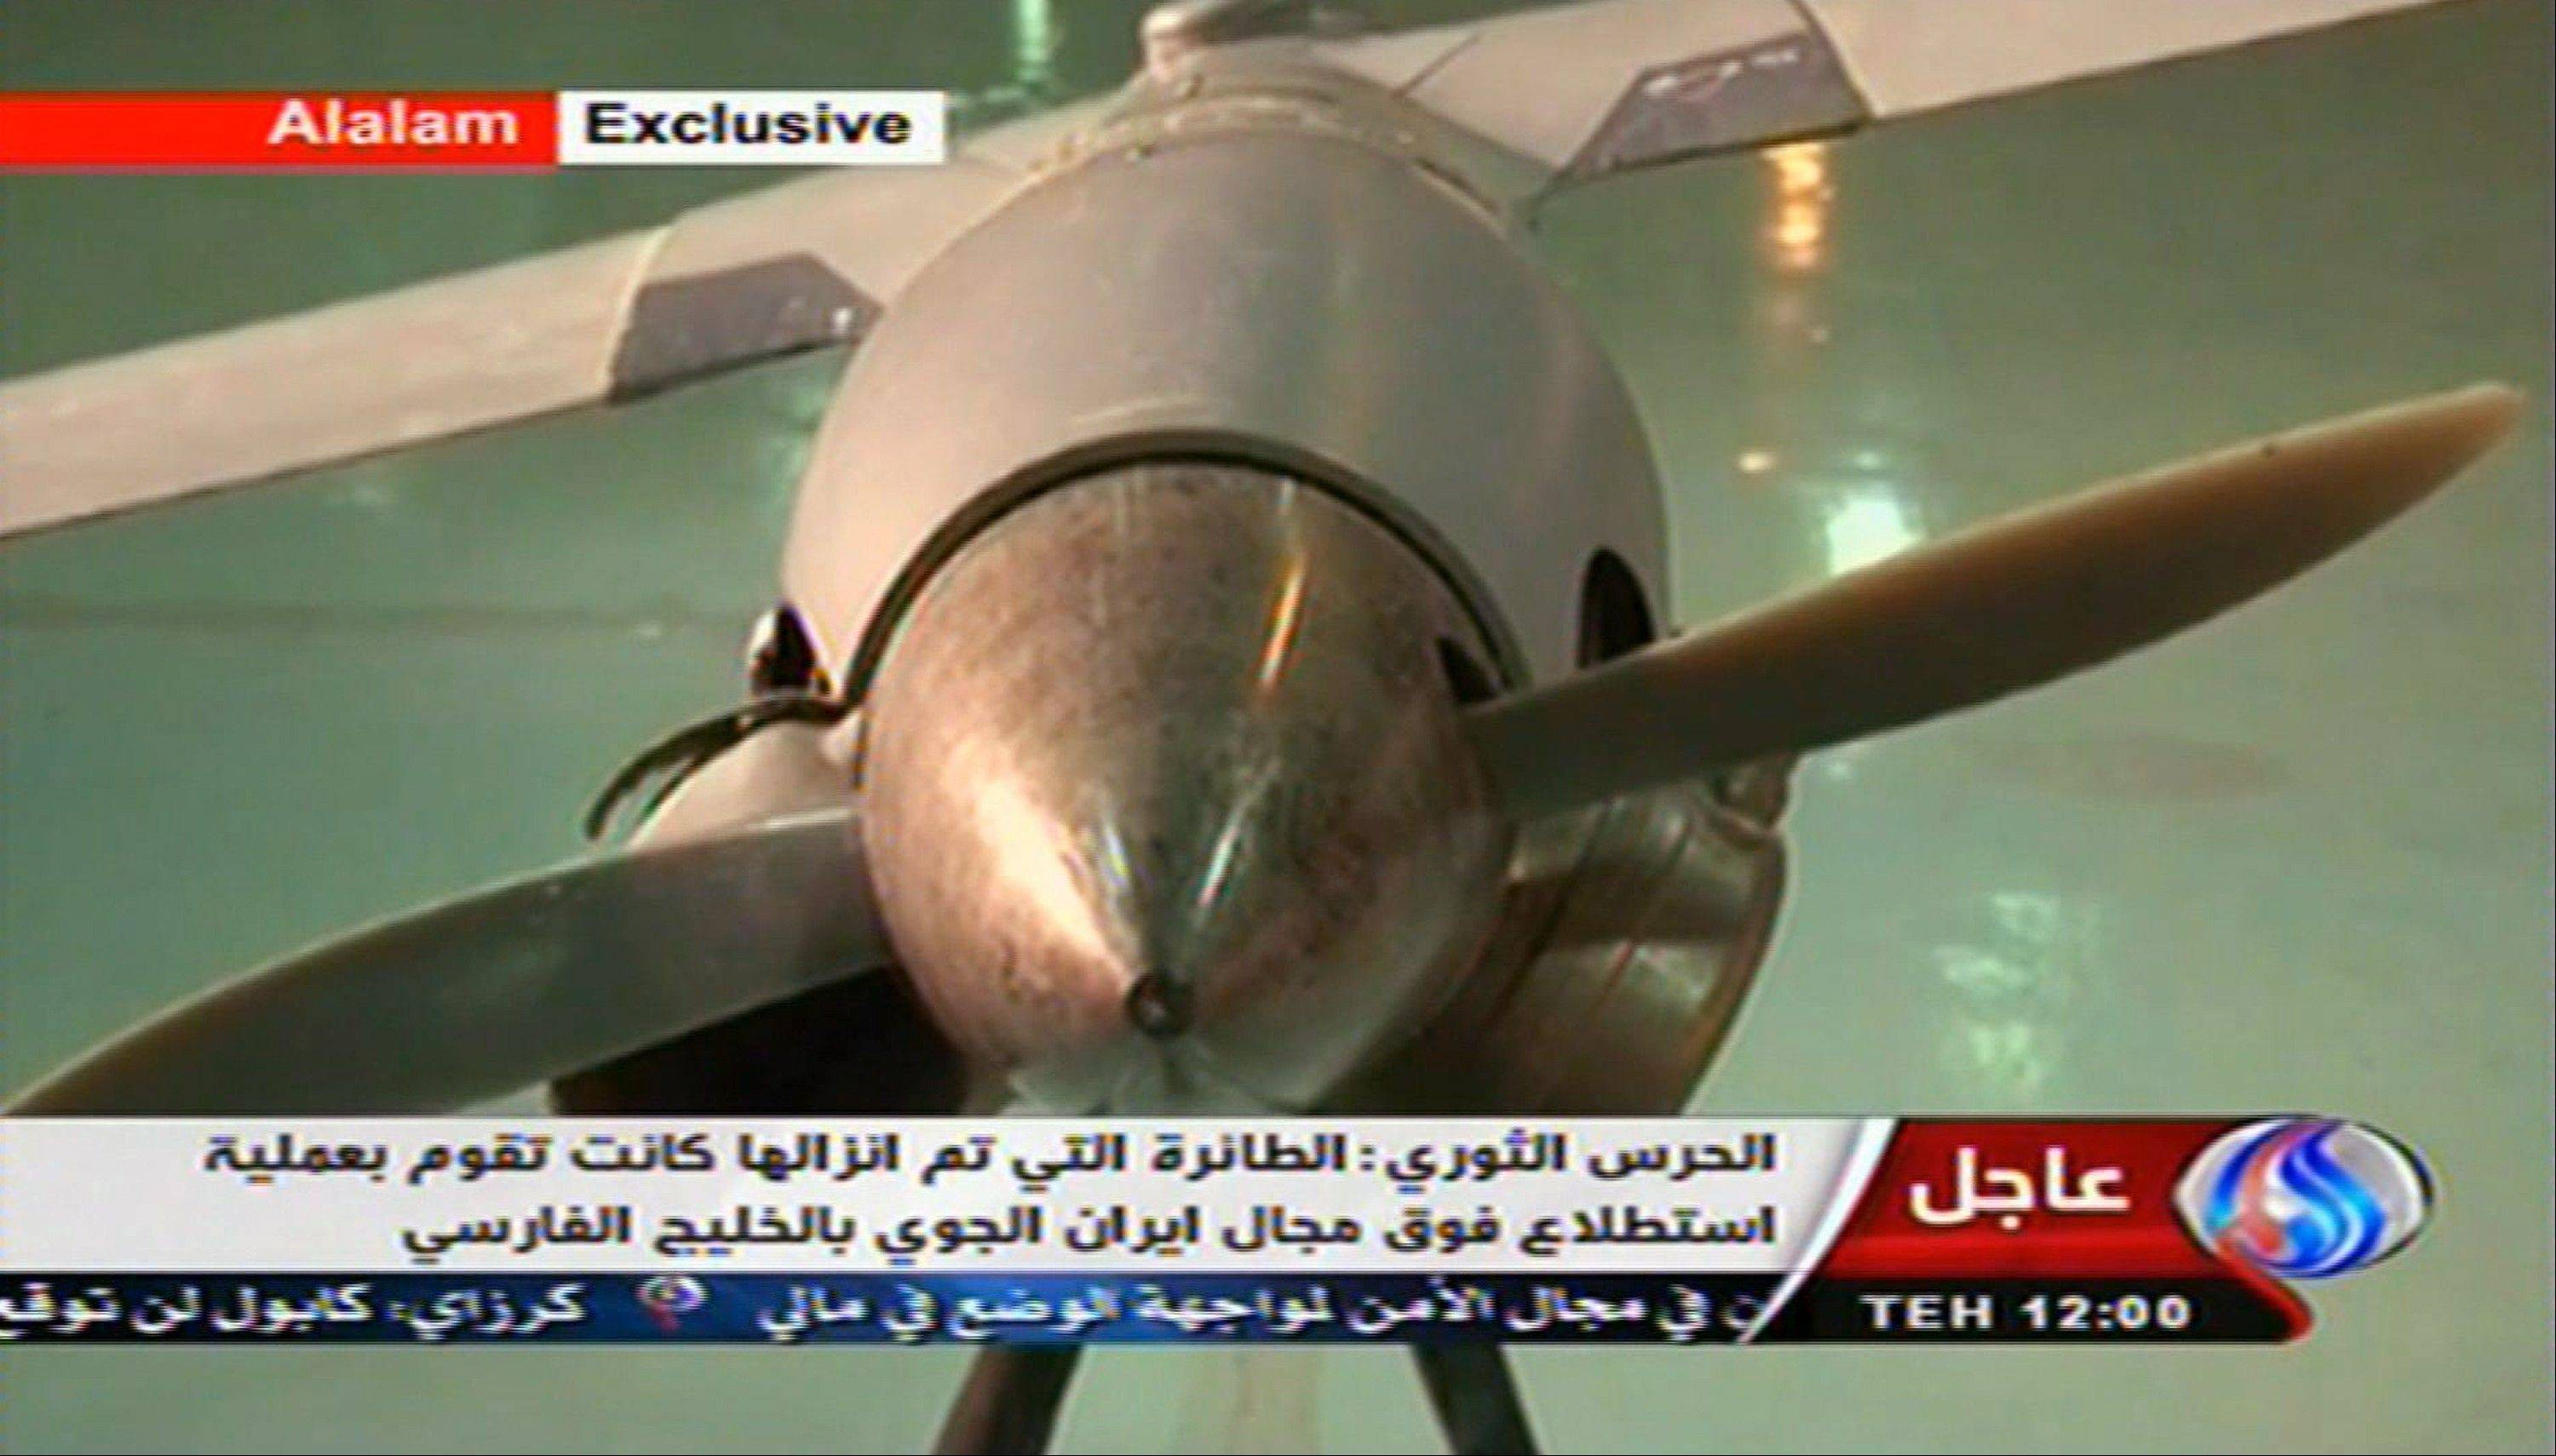 This image taken from the Iranian state TV�s Arabic-language channel Al-Alam shows what they purport to be an intact ScanEagle drone aircraft put on display Tuesday. Iran claimed Tuesday it had captured a U.S. drone after it entered Iranian airspace over the Persian Gulf.